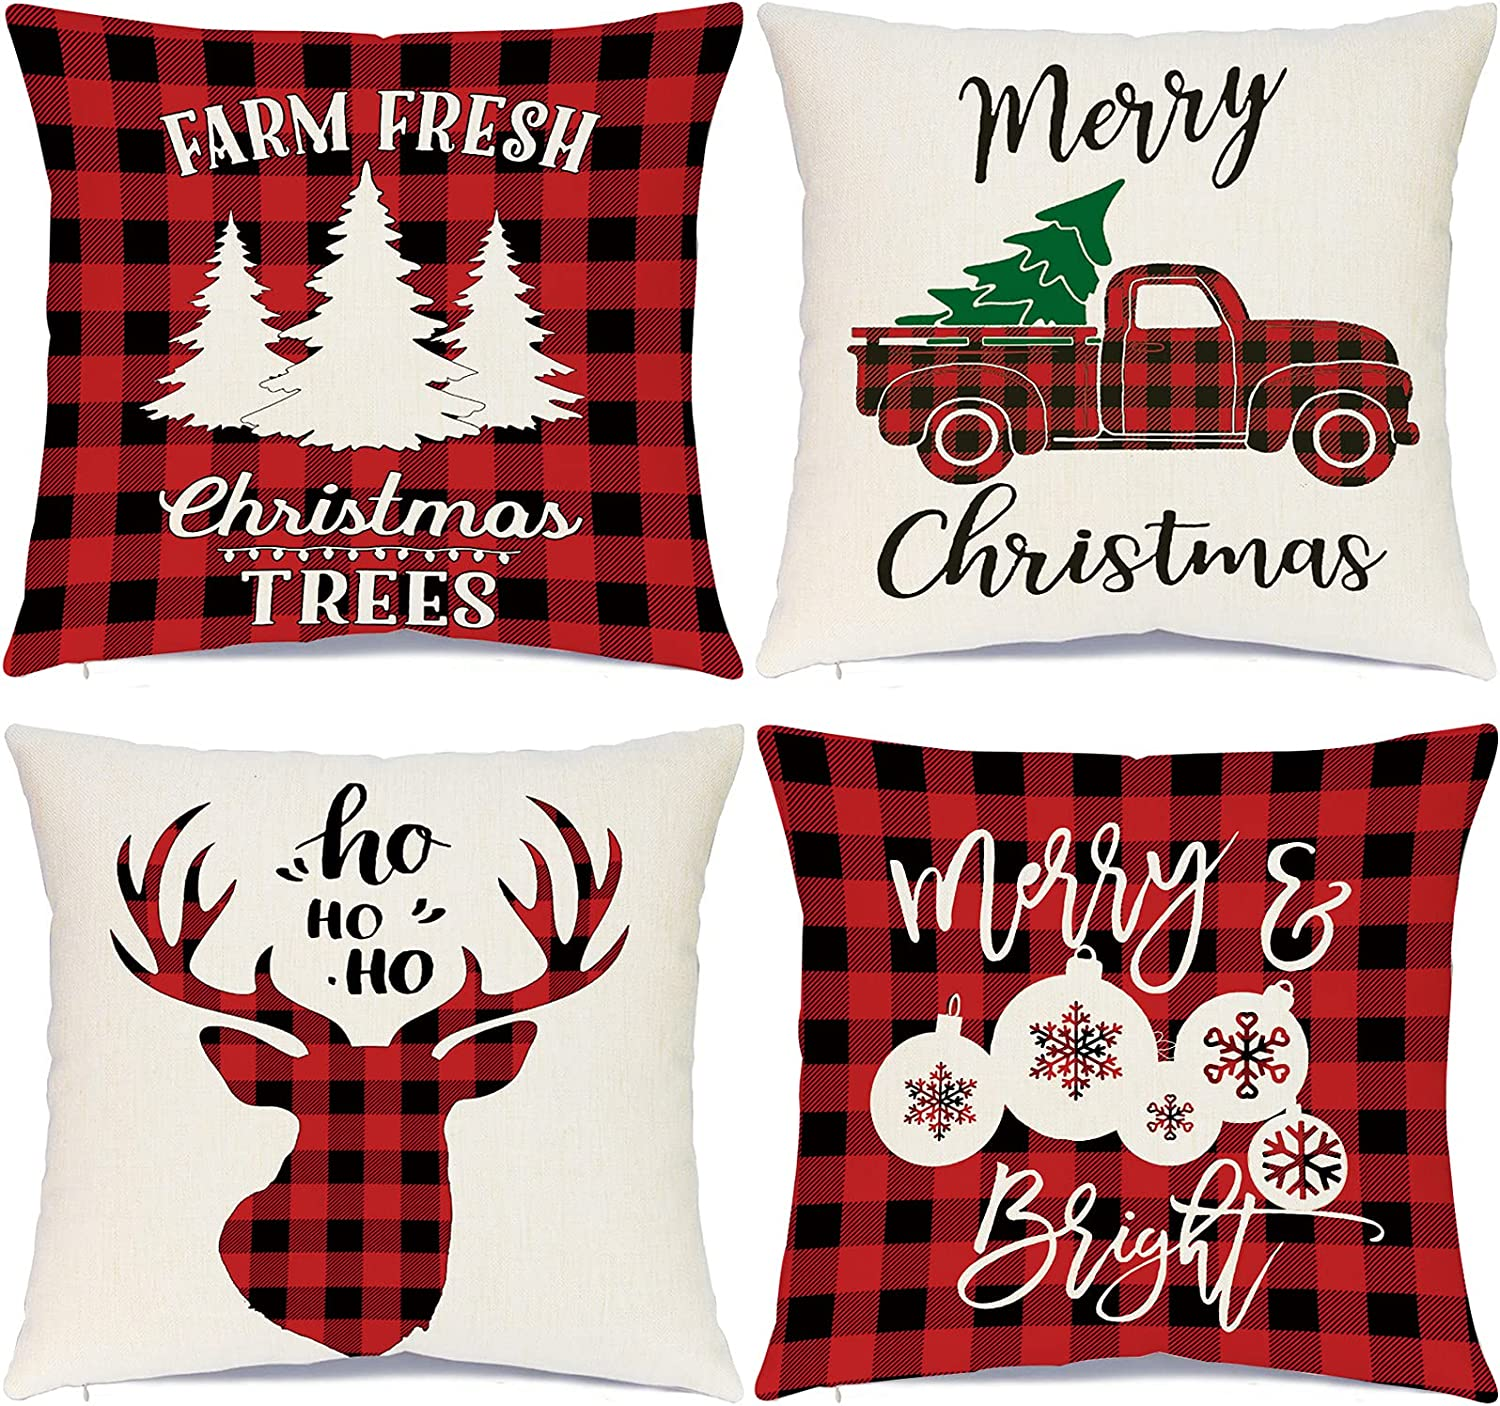 Ueerdand Christmas Decorations Pillow Covers 18 x 18 Inch Set of 4 Black and Red Farmhouse Buffalo Plaid Pillow Covers Rustic Linen Pillow Case for Sofa Couch Holiday Christmas Decor Winter